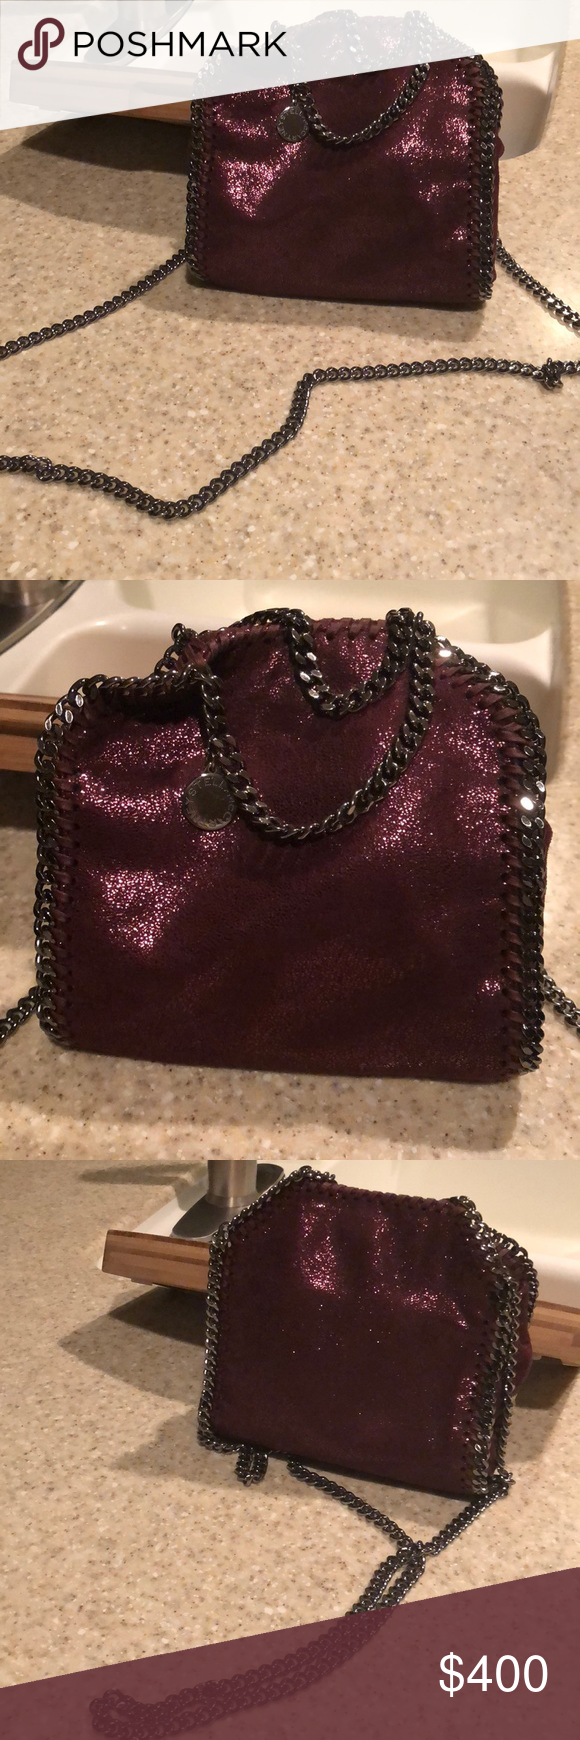 Stella McCartney Mini Falabella Crossbody Bag Used barely ever! Too tiny for my liking. Maroon metallic with silver/charcoal hardware. No flaws or signs of use. I don't have the receipt or dustbags, etc. I absolutely love this bag, but I carry a million things with me everyday and this is not the right bag for me!!!! Inside slit pocket for smallish items as well :) I believe the color is called plum Stella McCartney Bags Crossbody Bags